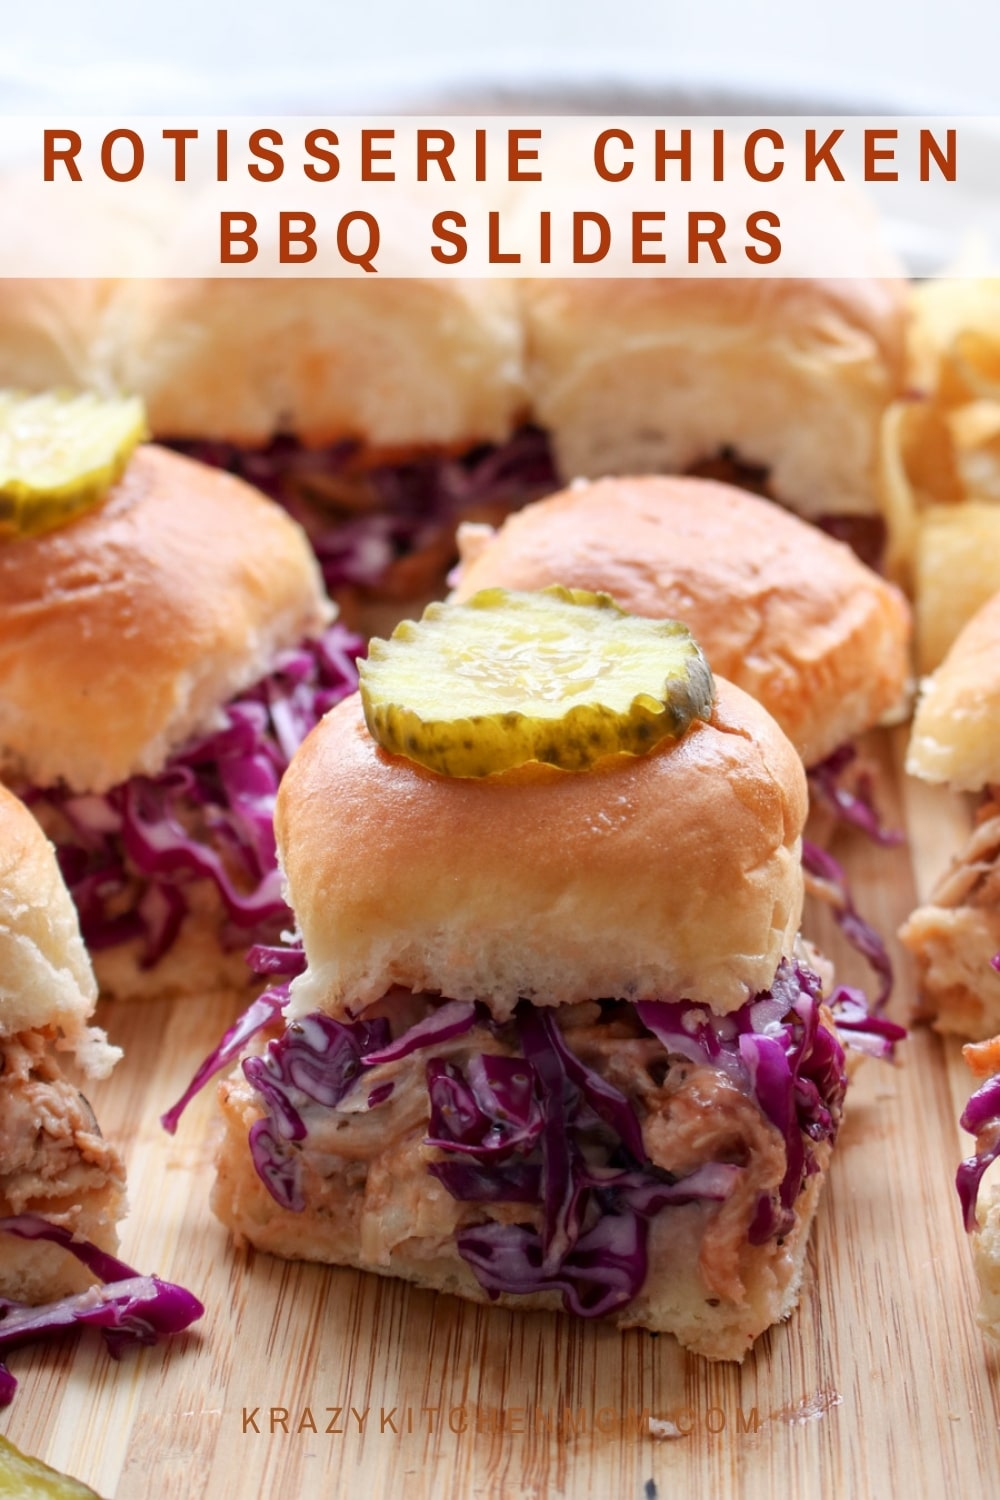 Super simple Rotisserie Chicken BBQ Sliders are made with store-bought rotisserie chicken, your favorite BBQ sauce, homemade slaw, and sweet little Hawaiian rolls. via @krazykitchenmom